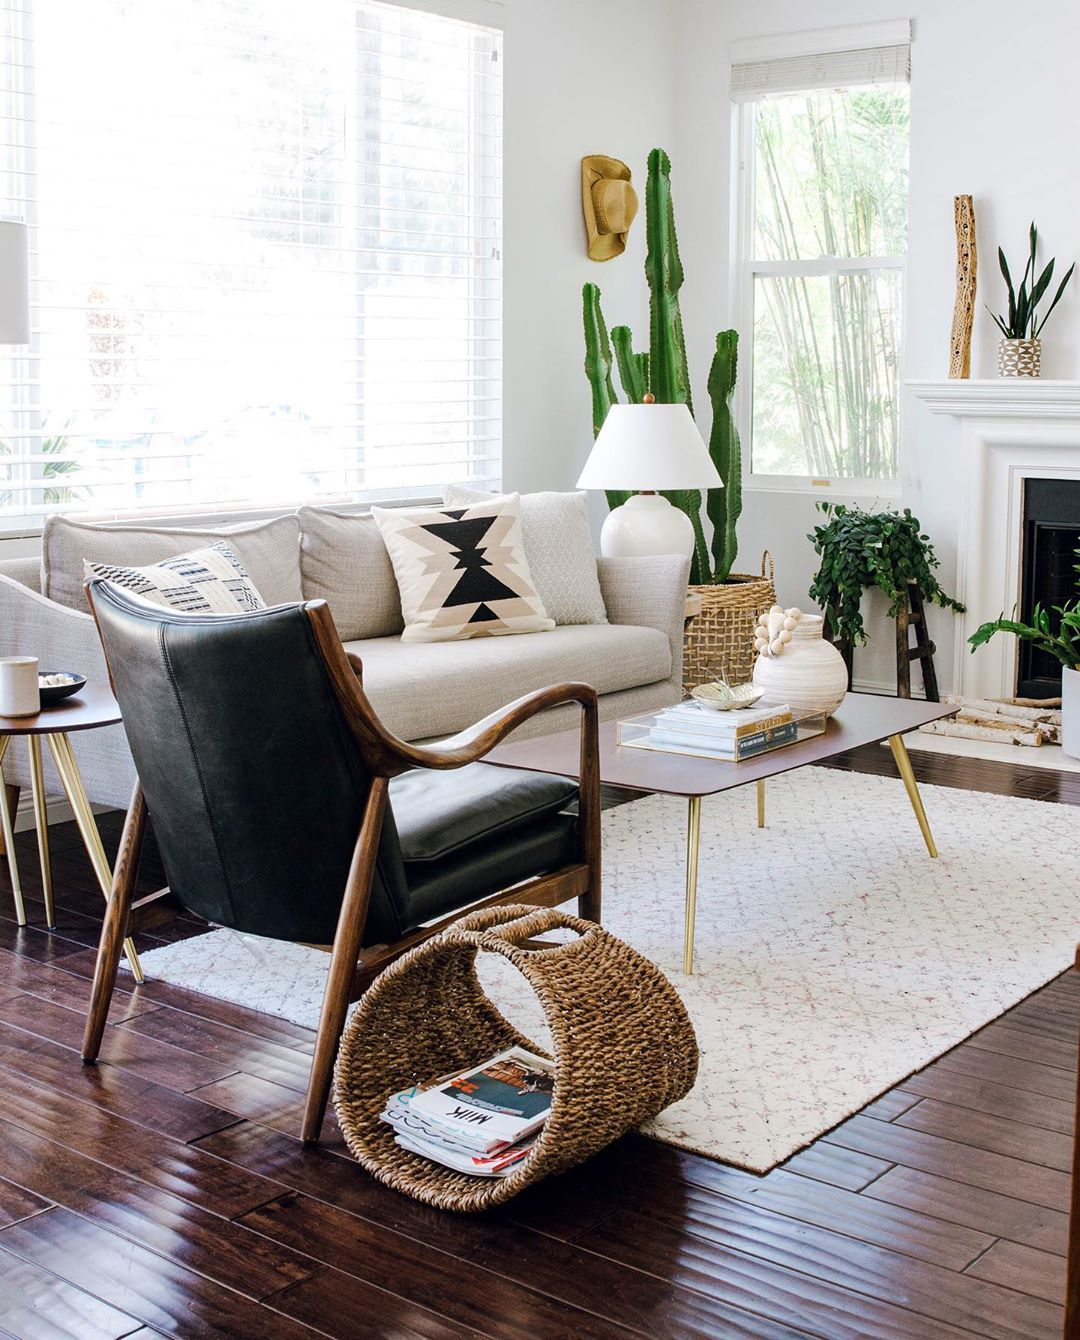 Pin On Home Decor Accents